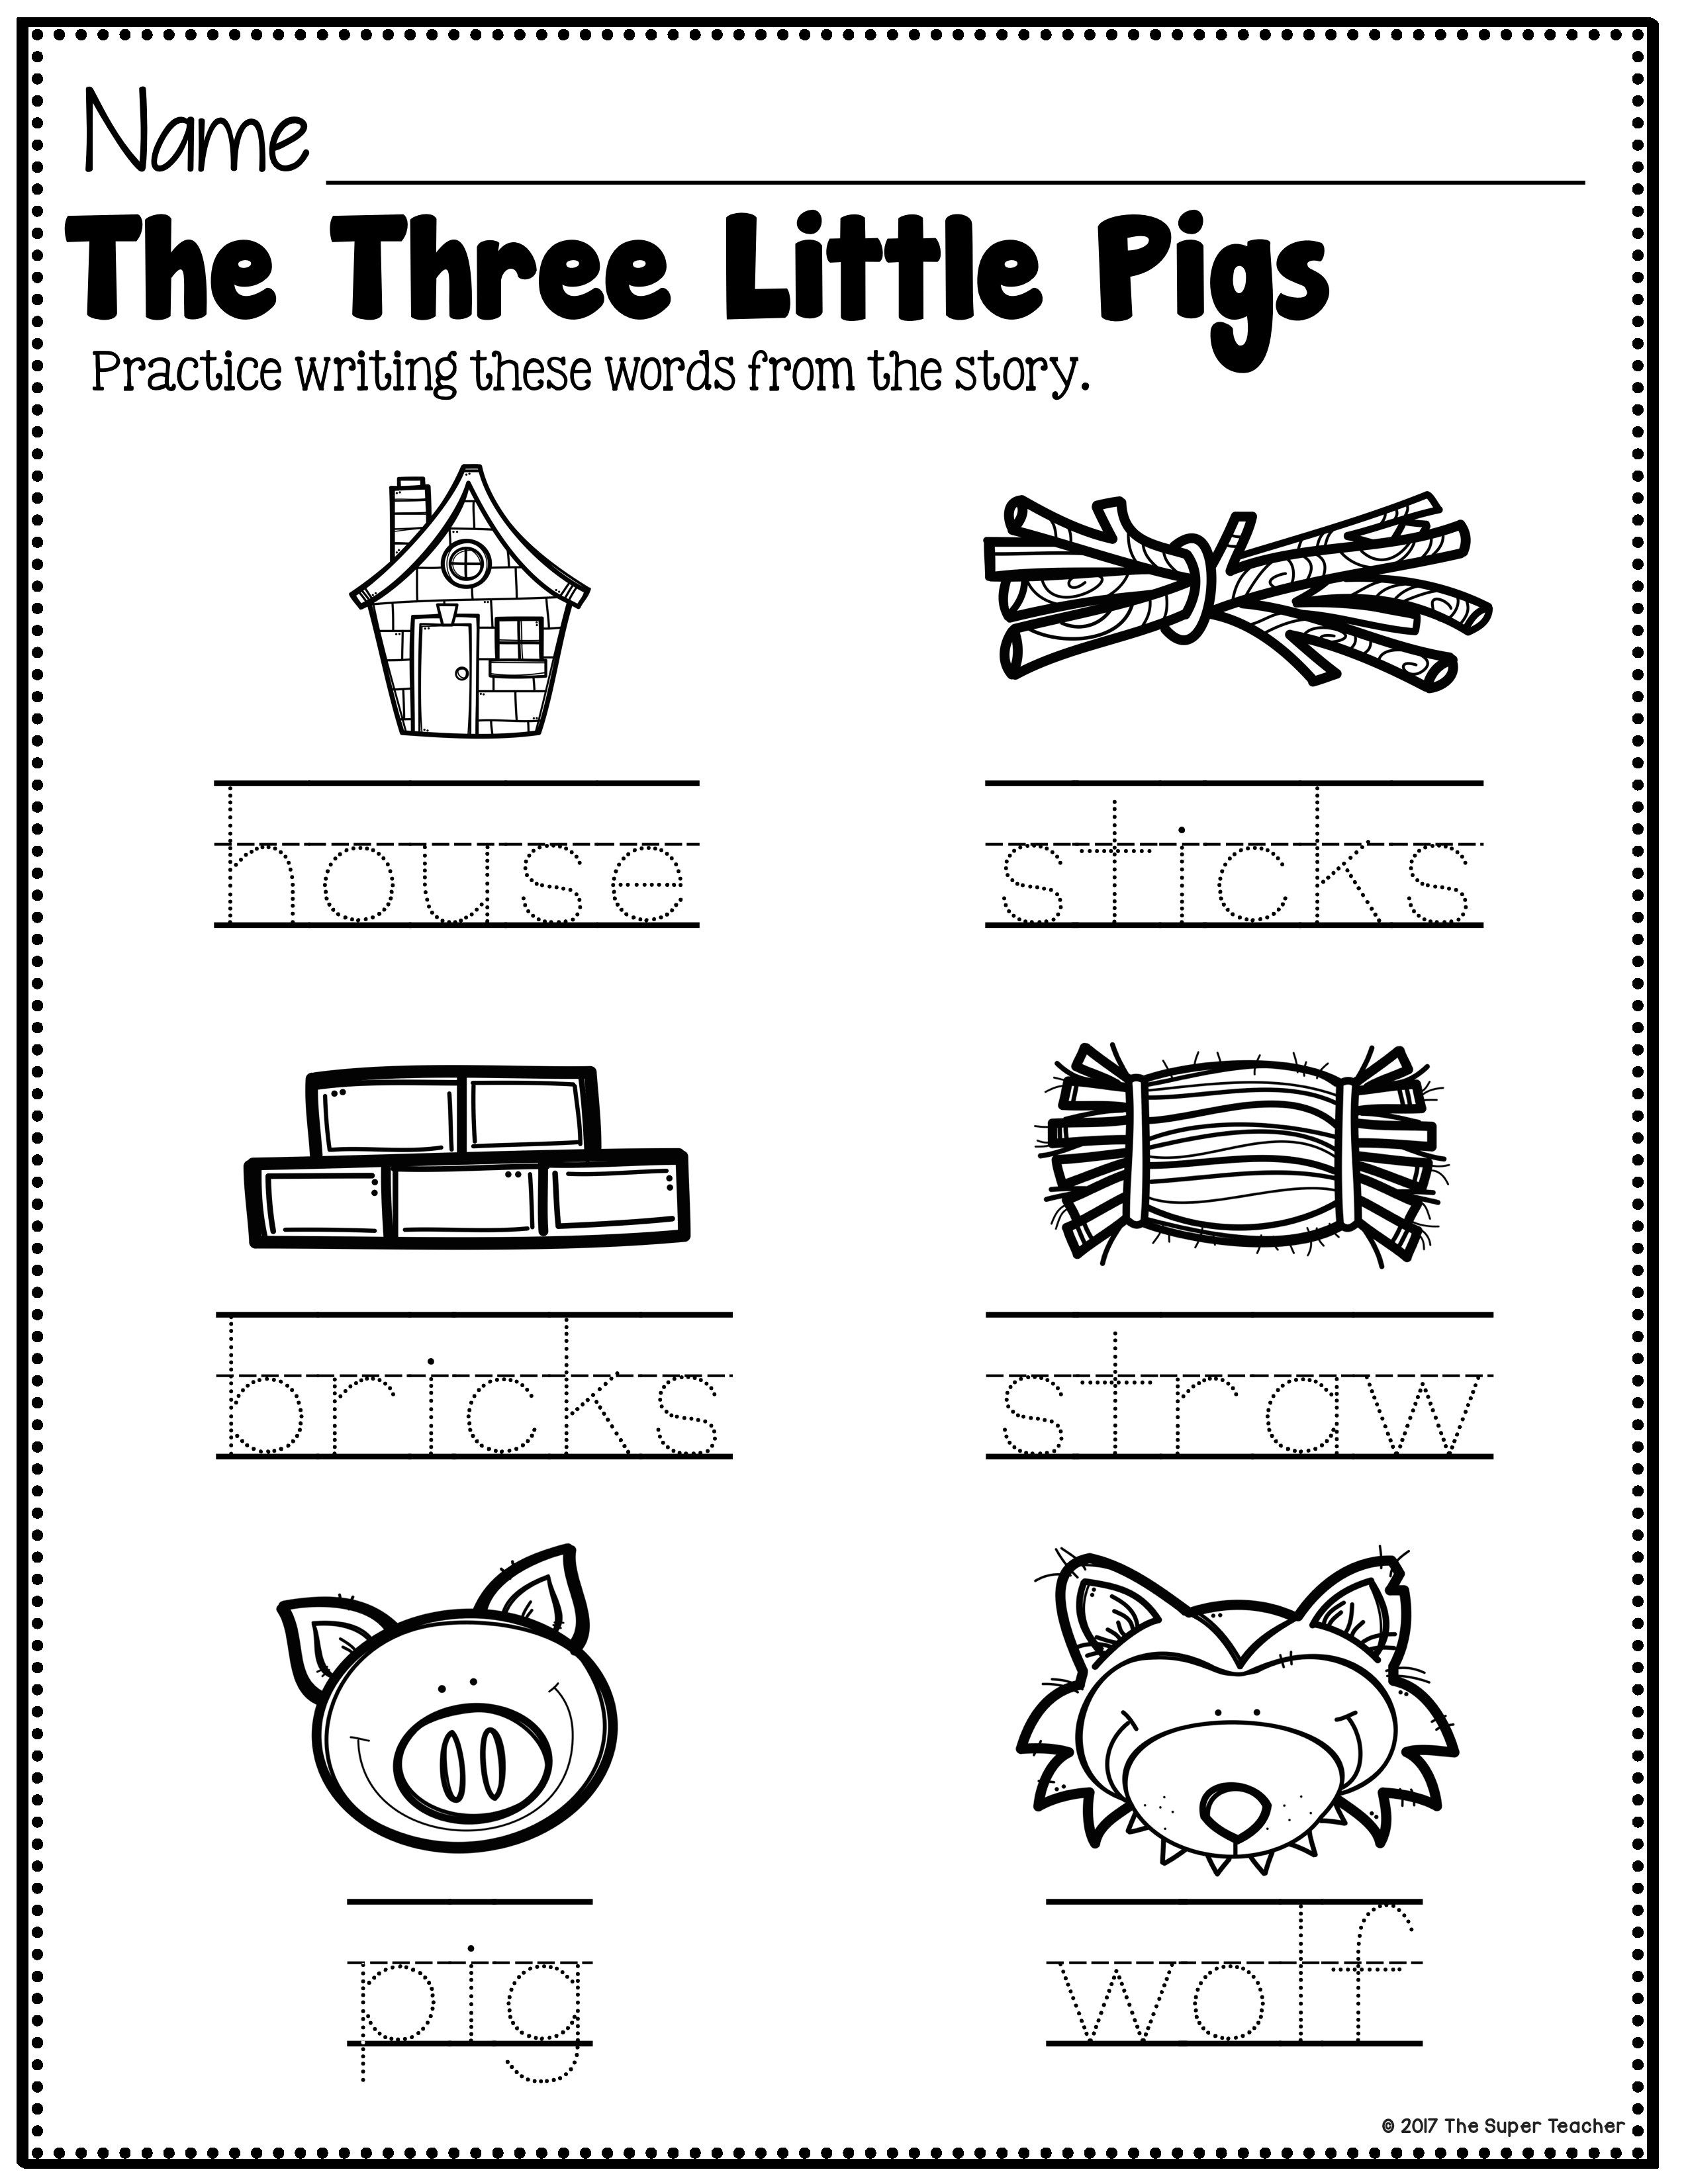 Simple Story Elements Made Practical And Fun Three Little Pigs Little Pigs Three Little Pigs Story [ 3300 x 2550 Pixel ]